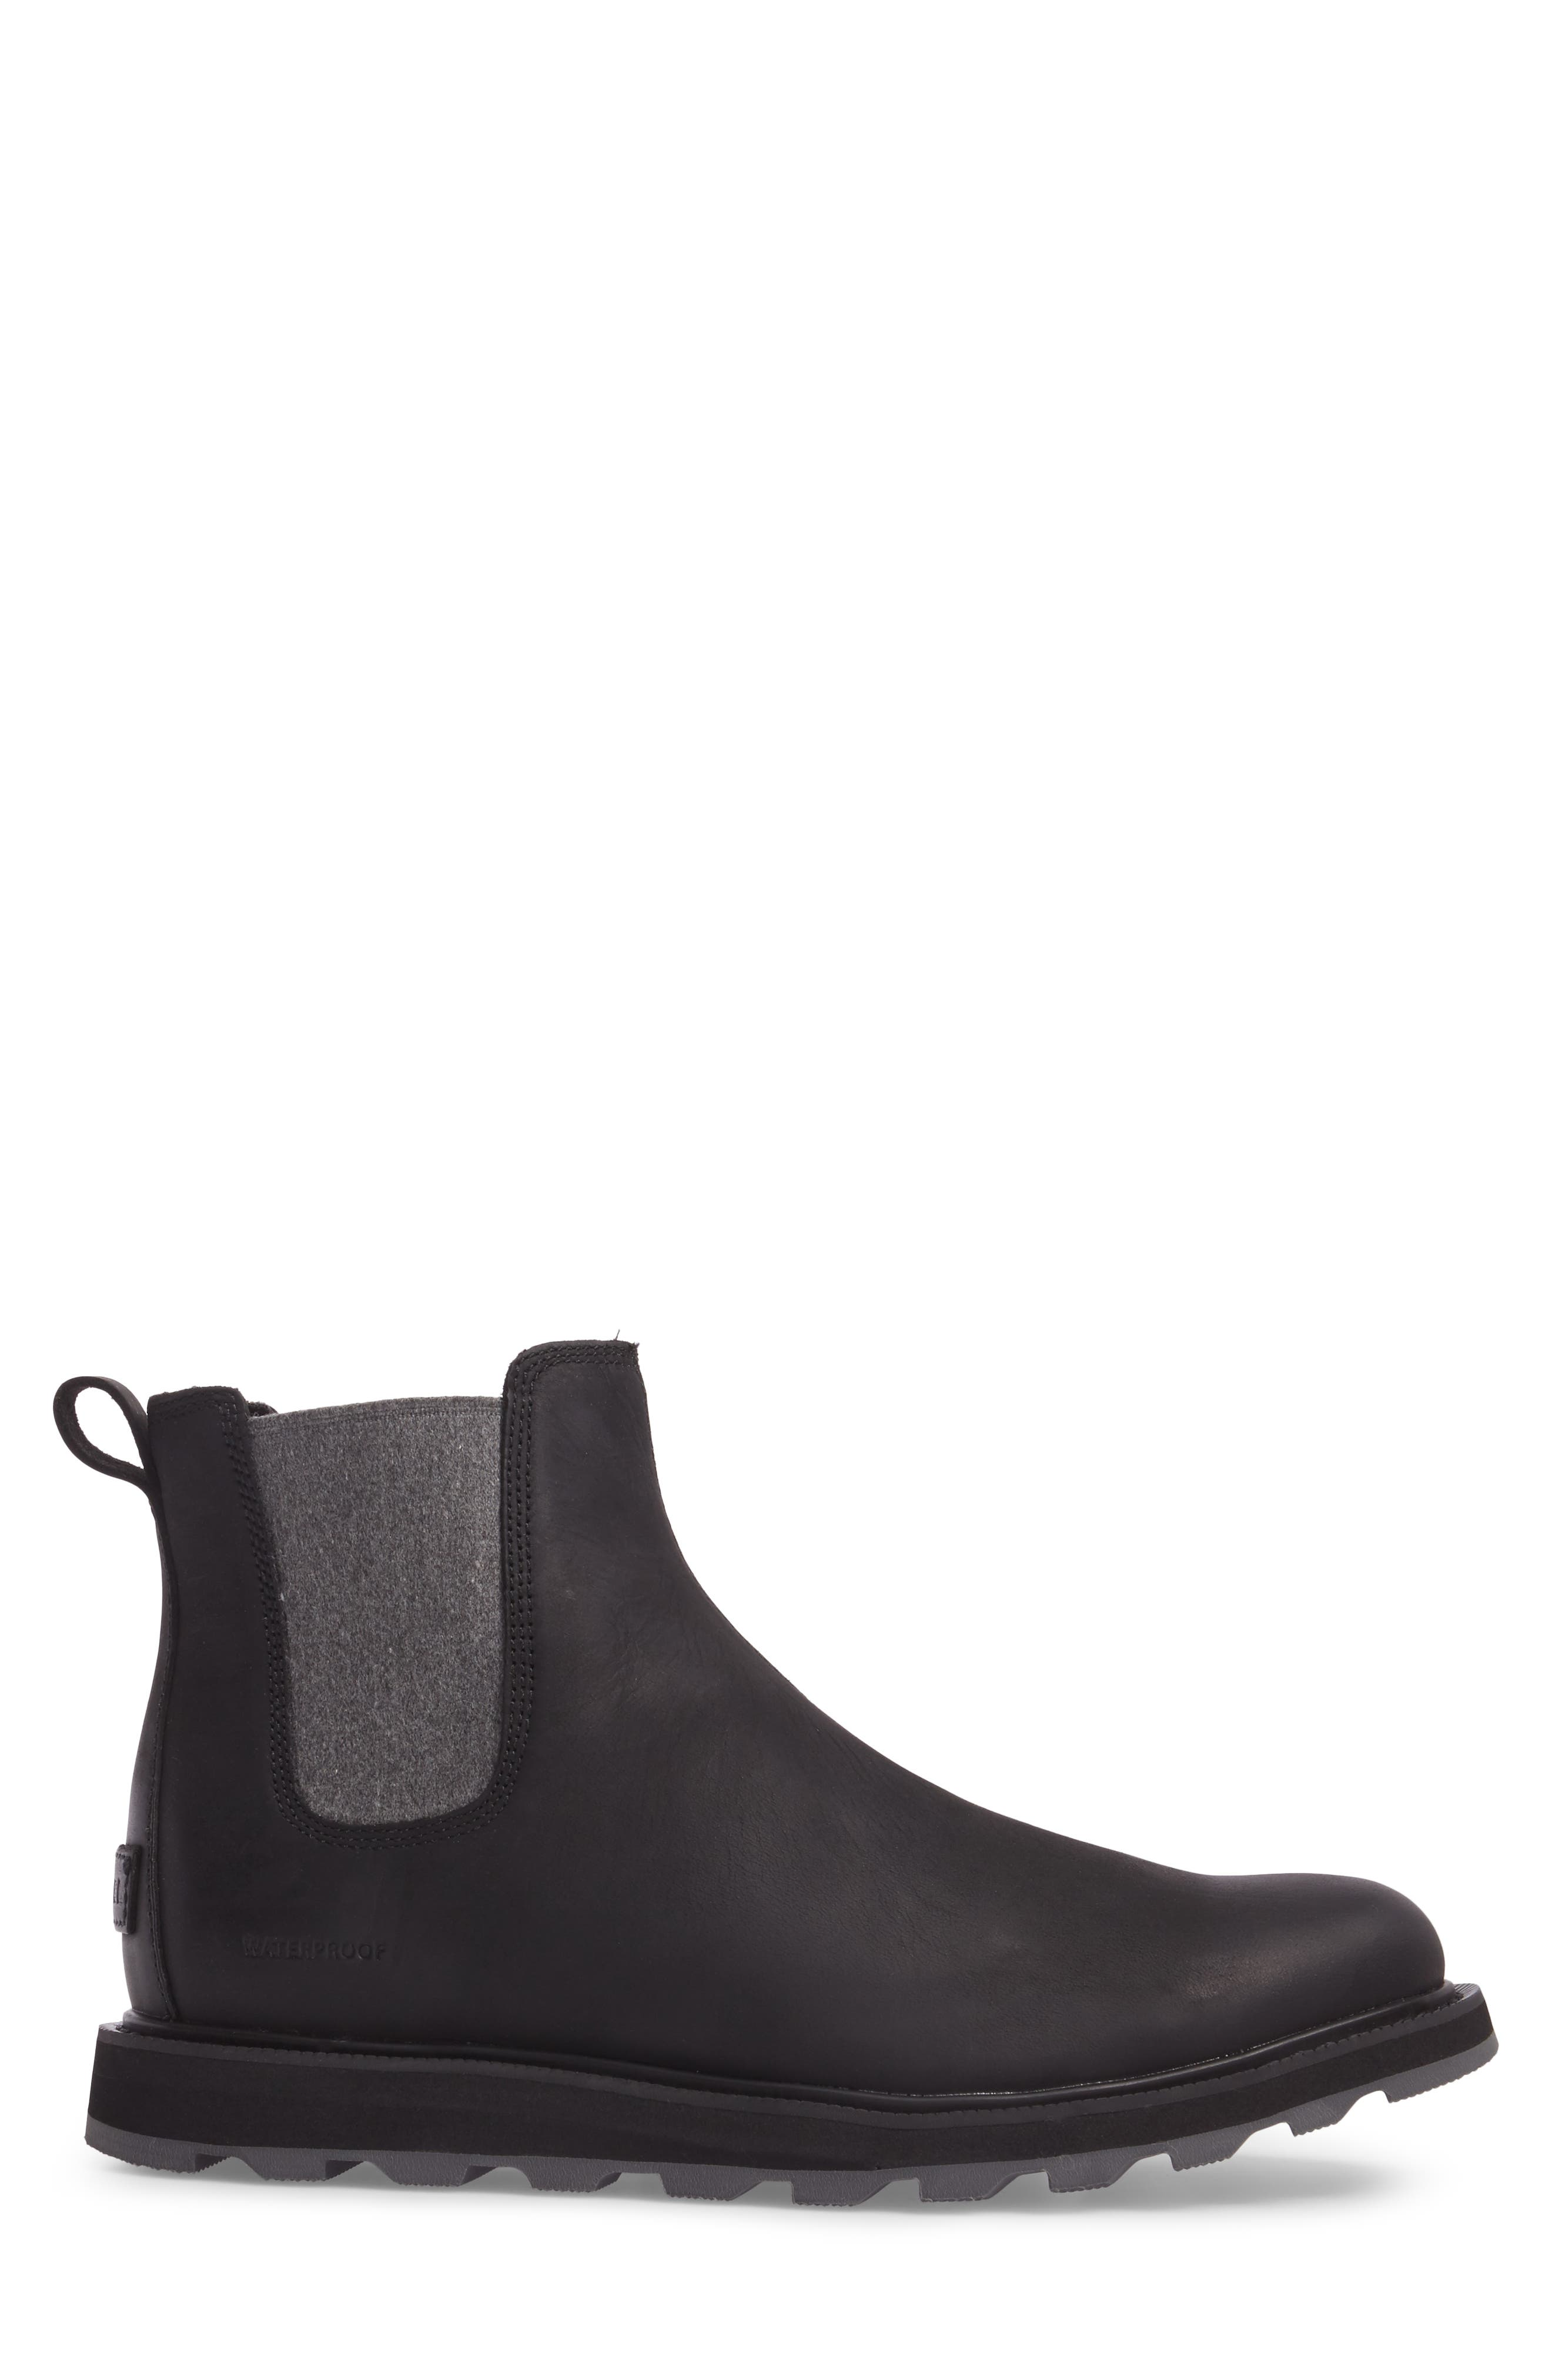 Madson Waterproof Chelsea Boot,                             Alternate thumbnail 3, color,                             BLACK